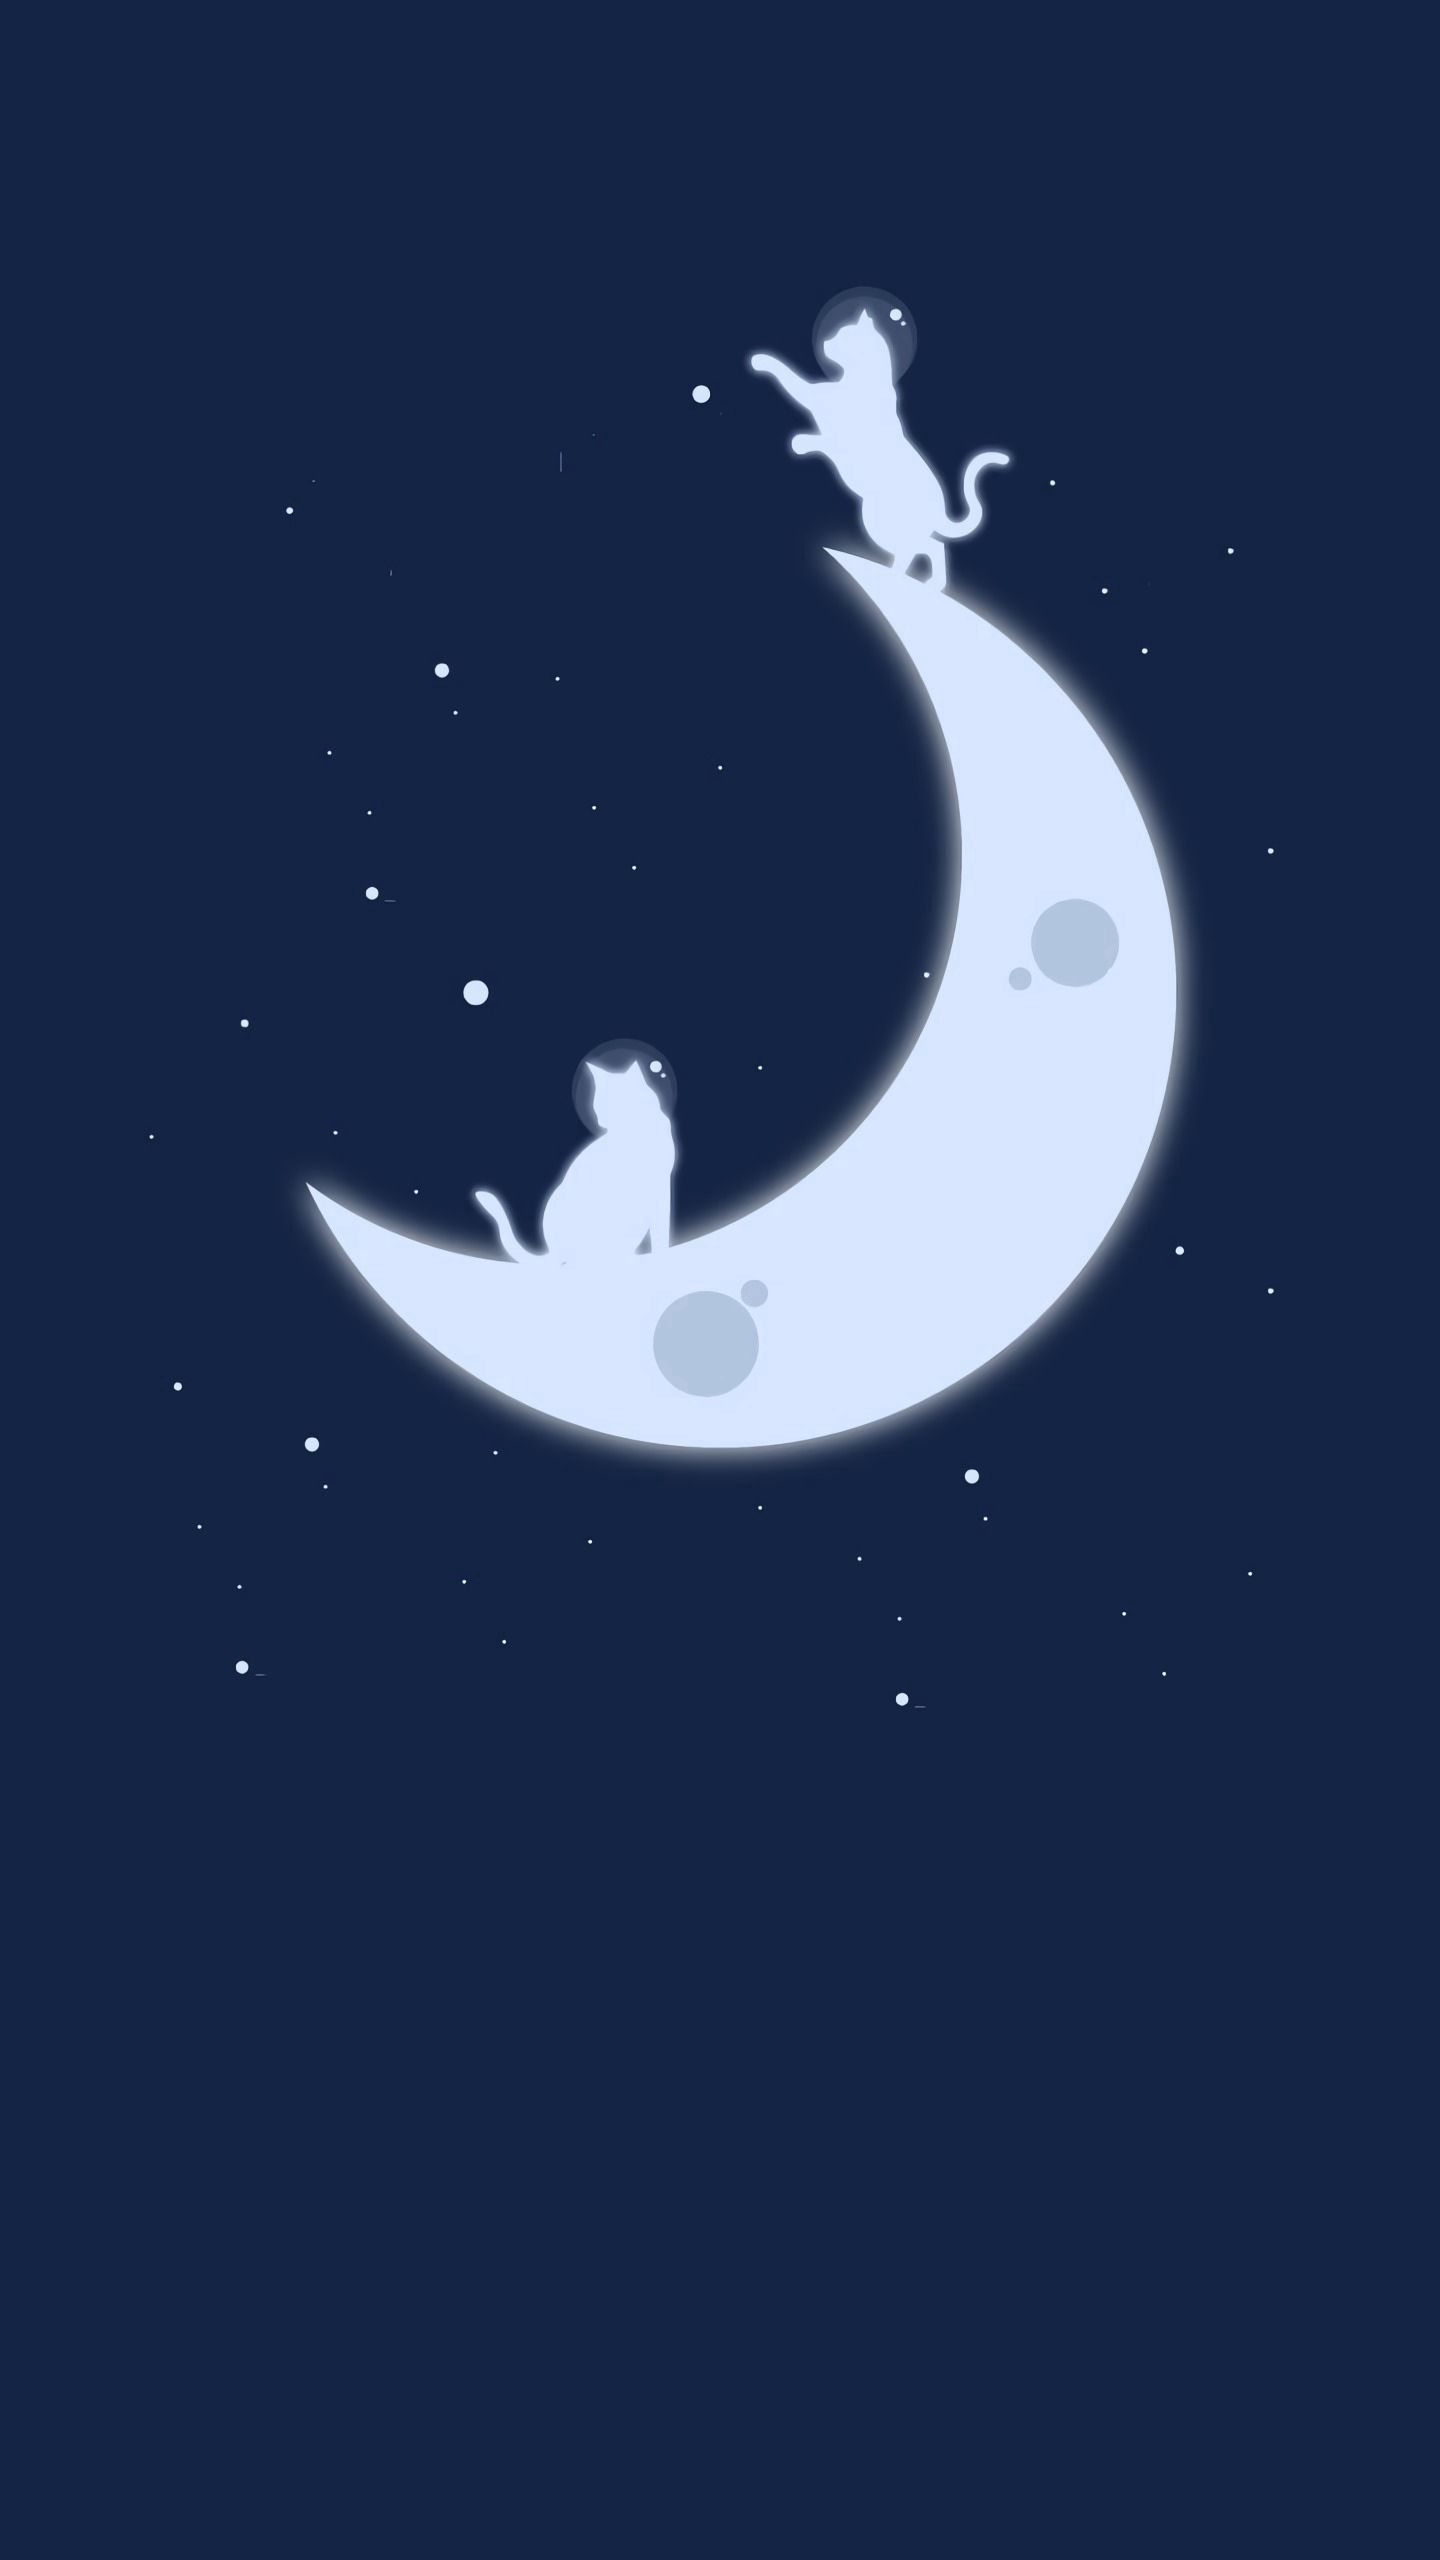 76671 download wallpaper Cats, Art, Stars, Moon, Minimalism screensavers and pictures for free